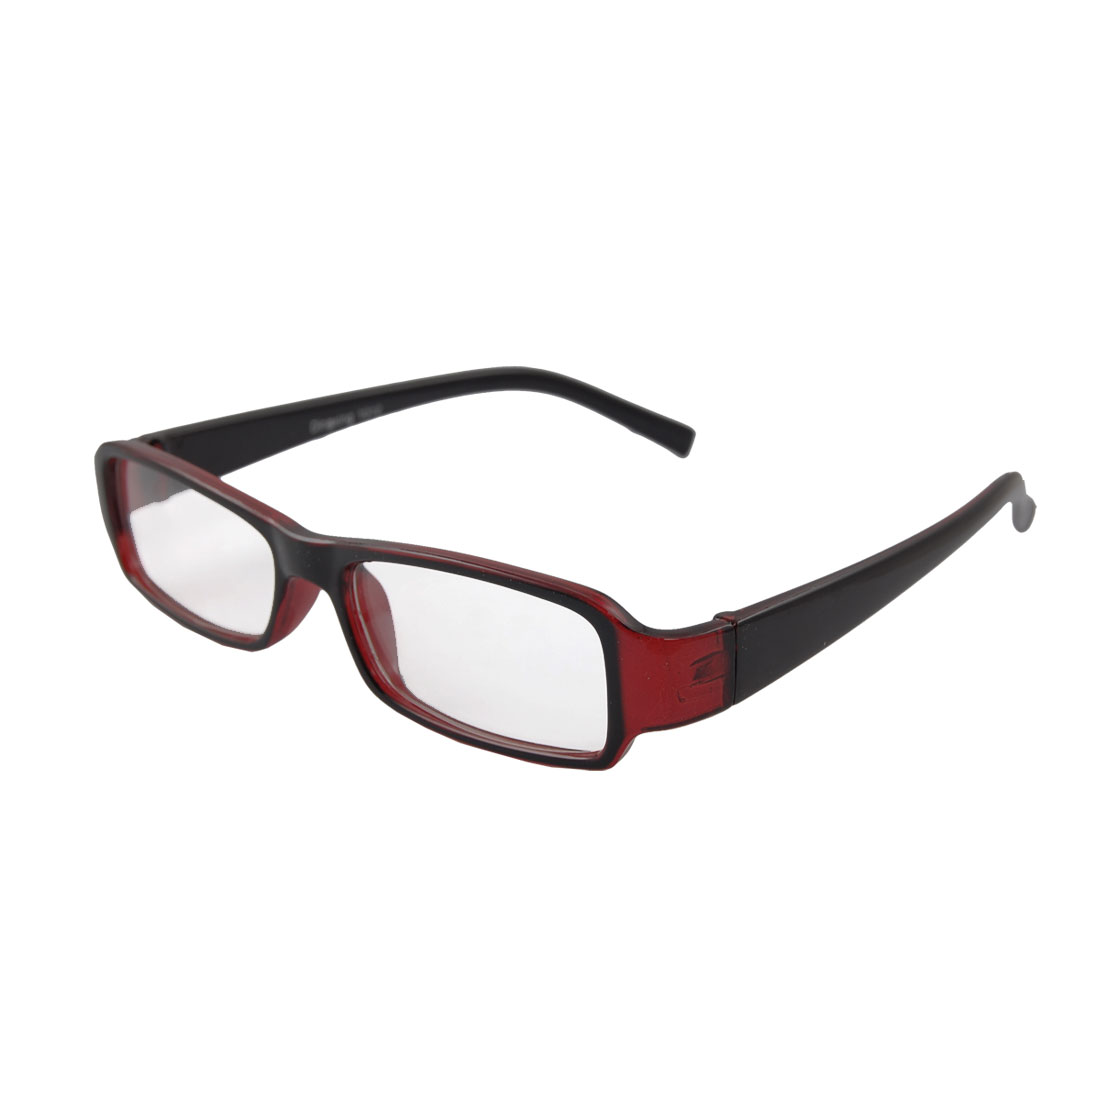 Clear Burgundy Full Frame Plastic Clear Lens Glasses for Women